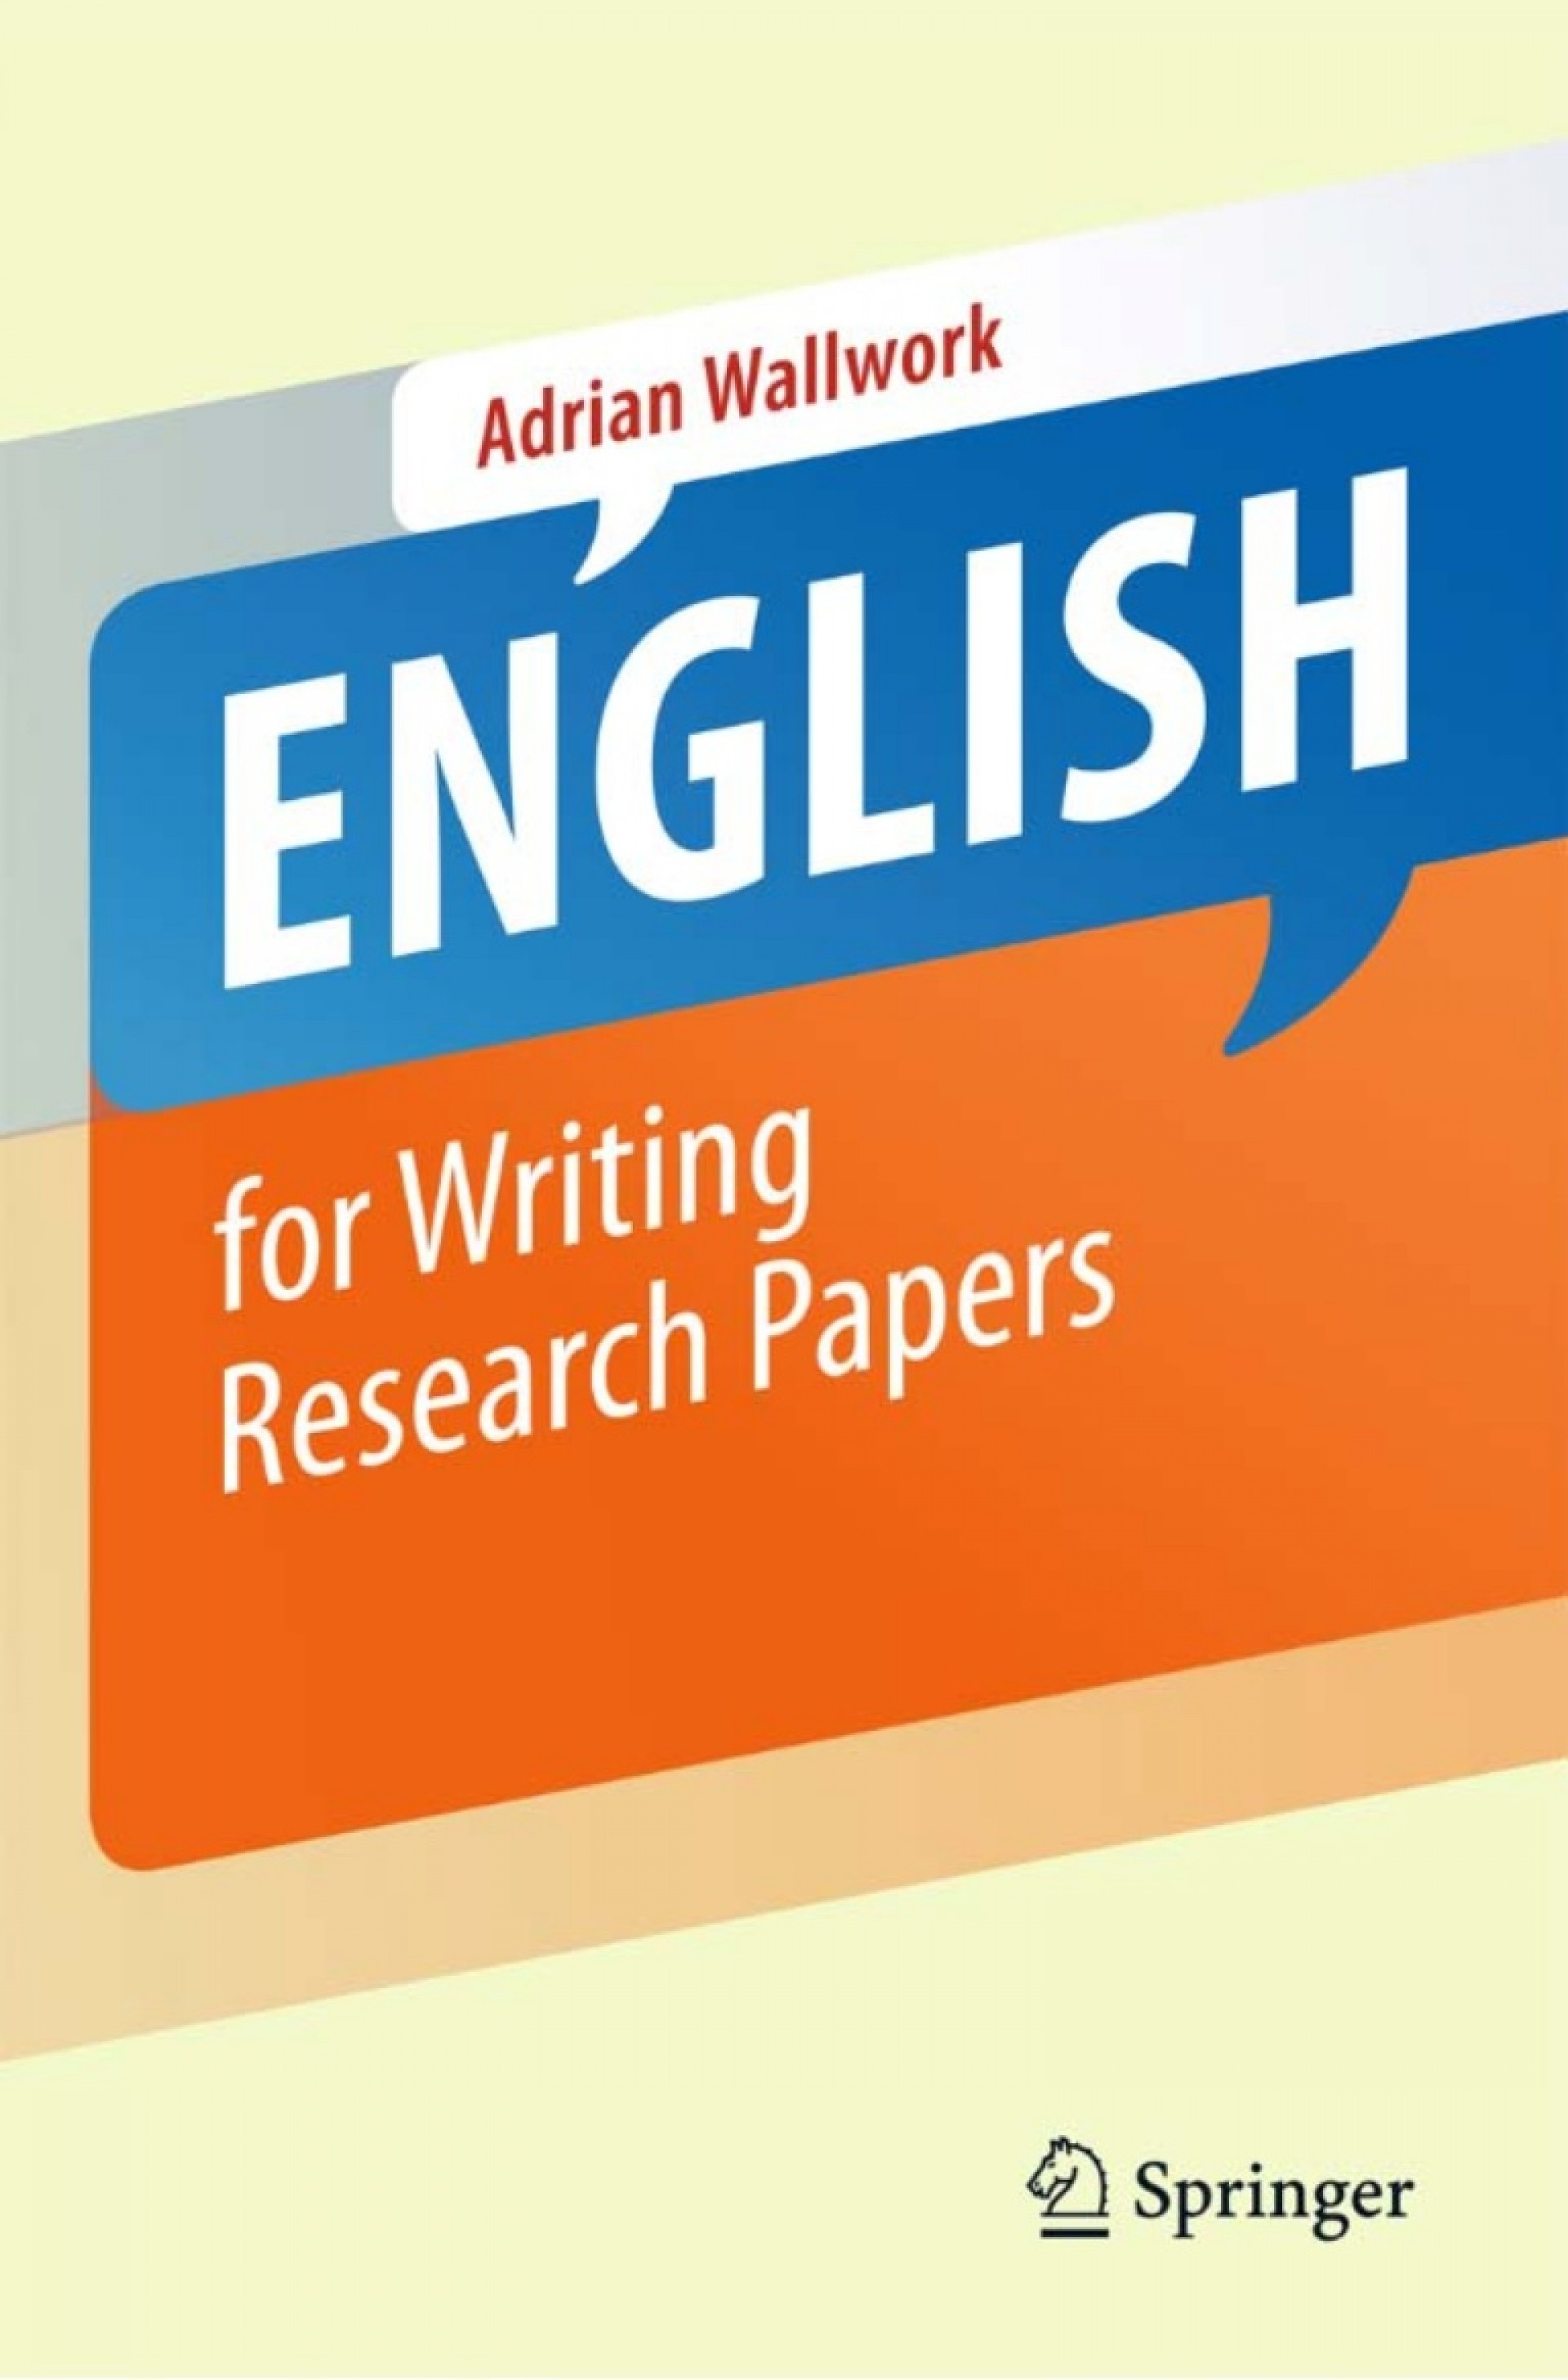 017 Research Paper Writing Englishforwritingresearchpapers Conversion Gate01 Thumbnail Unforgettable Rubric Software Free Download Prompts 1920